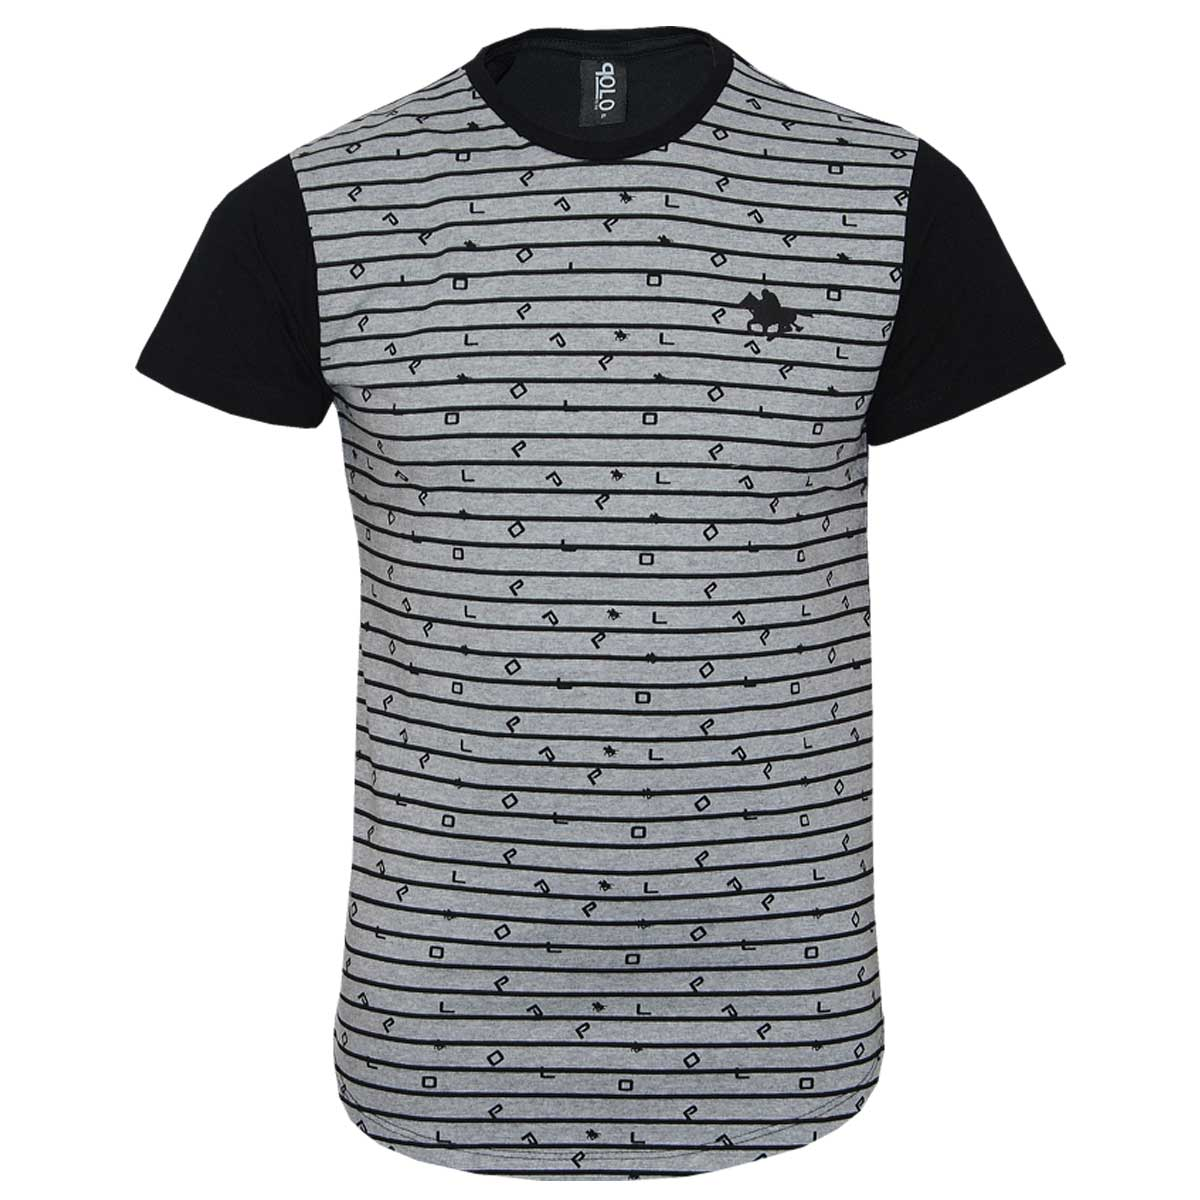 CAMISETA SWAG CARECA POLO RG518 REF 16549